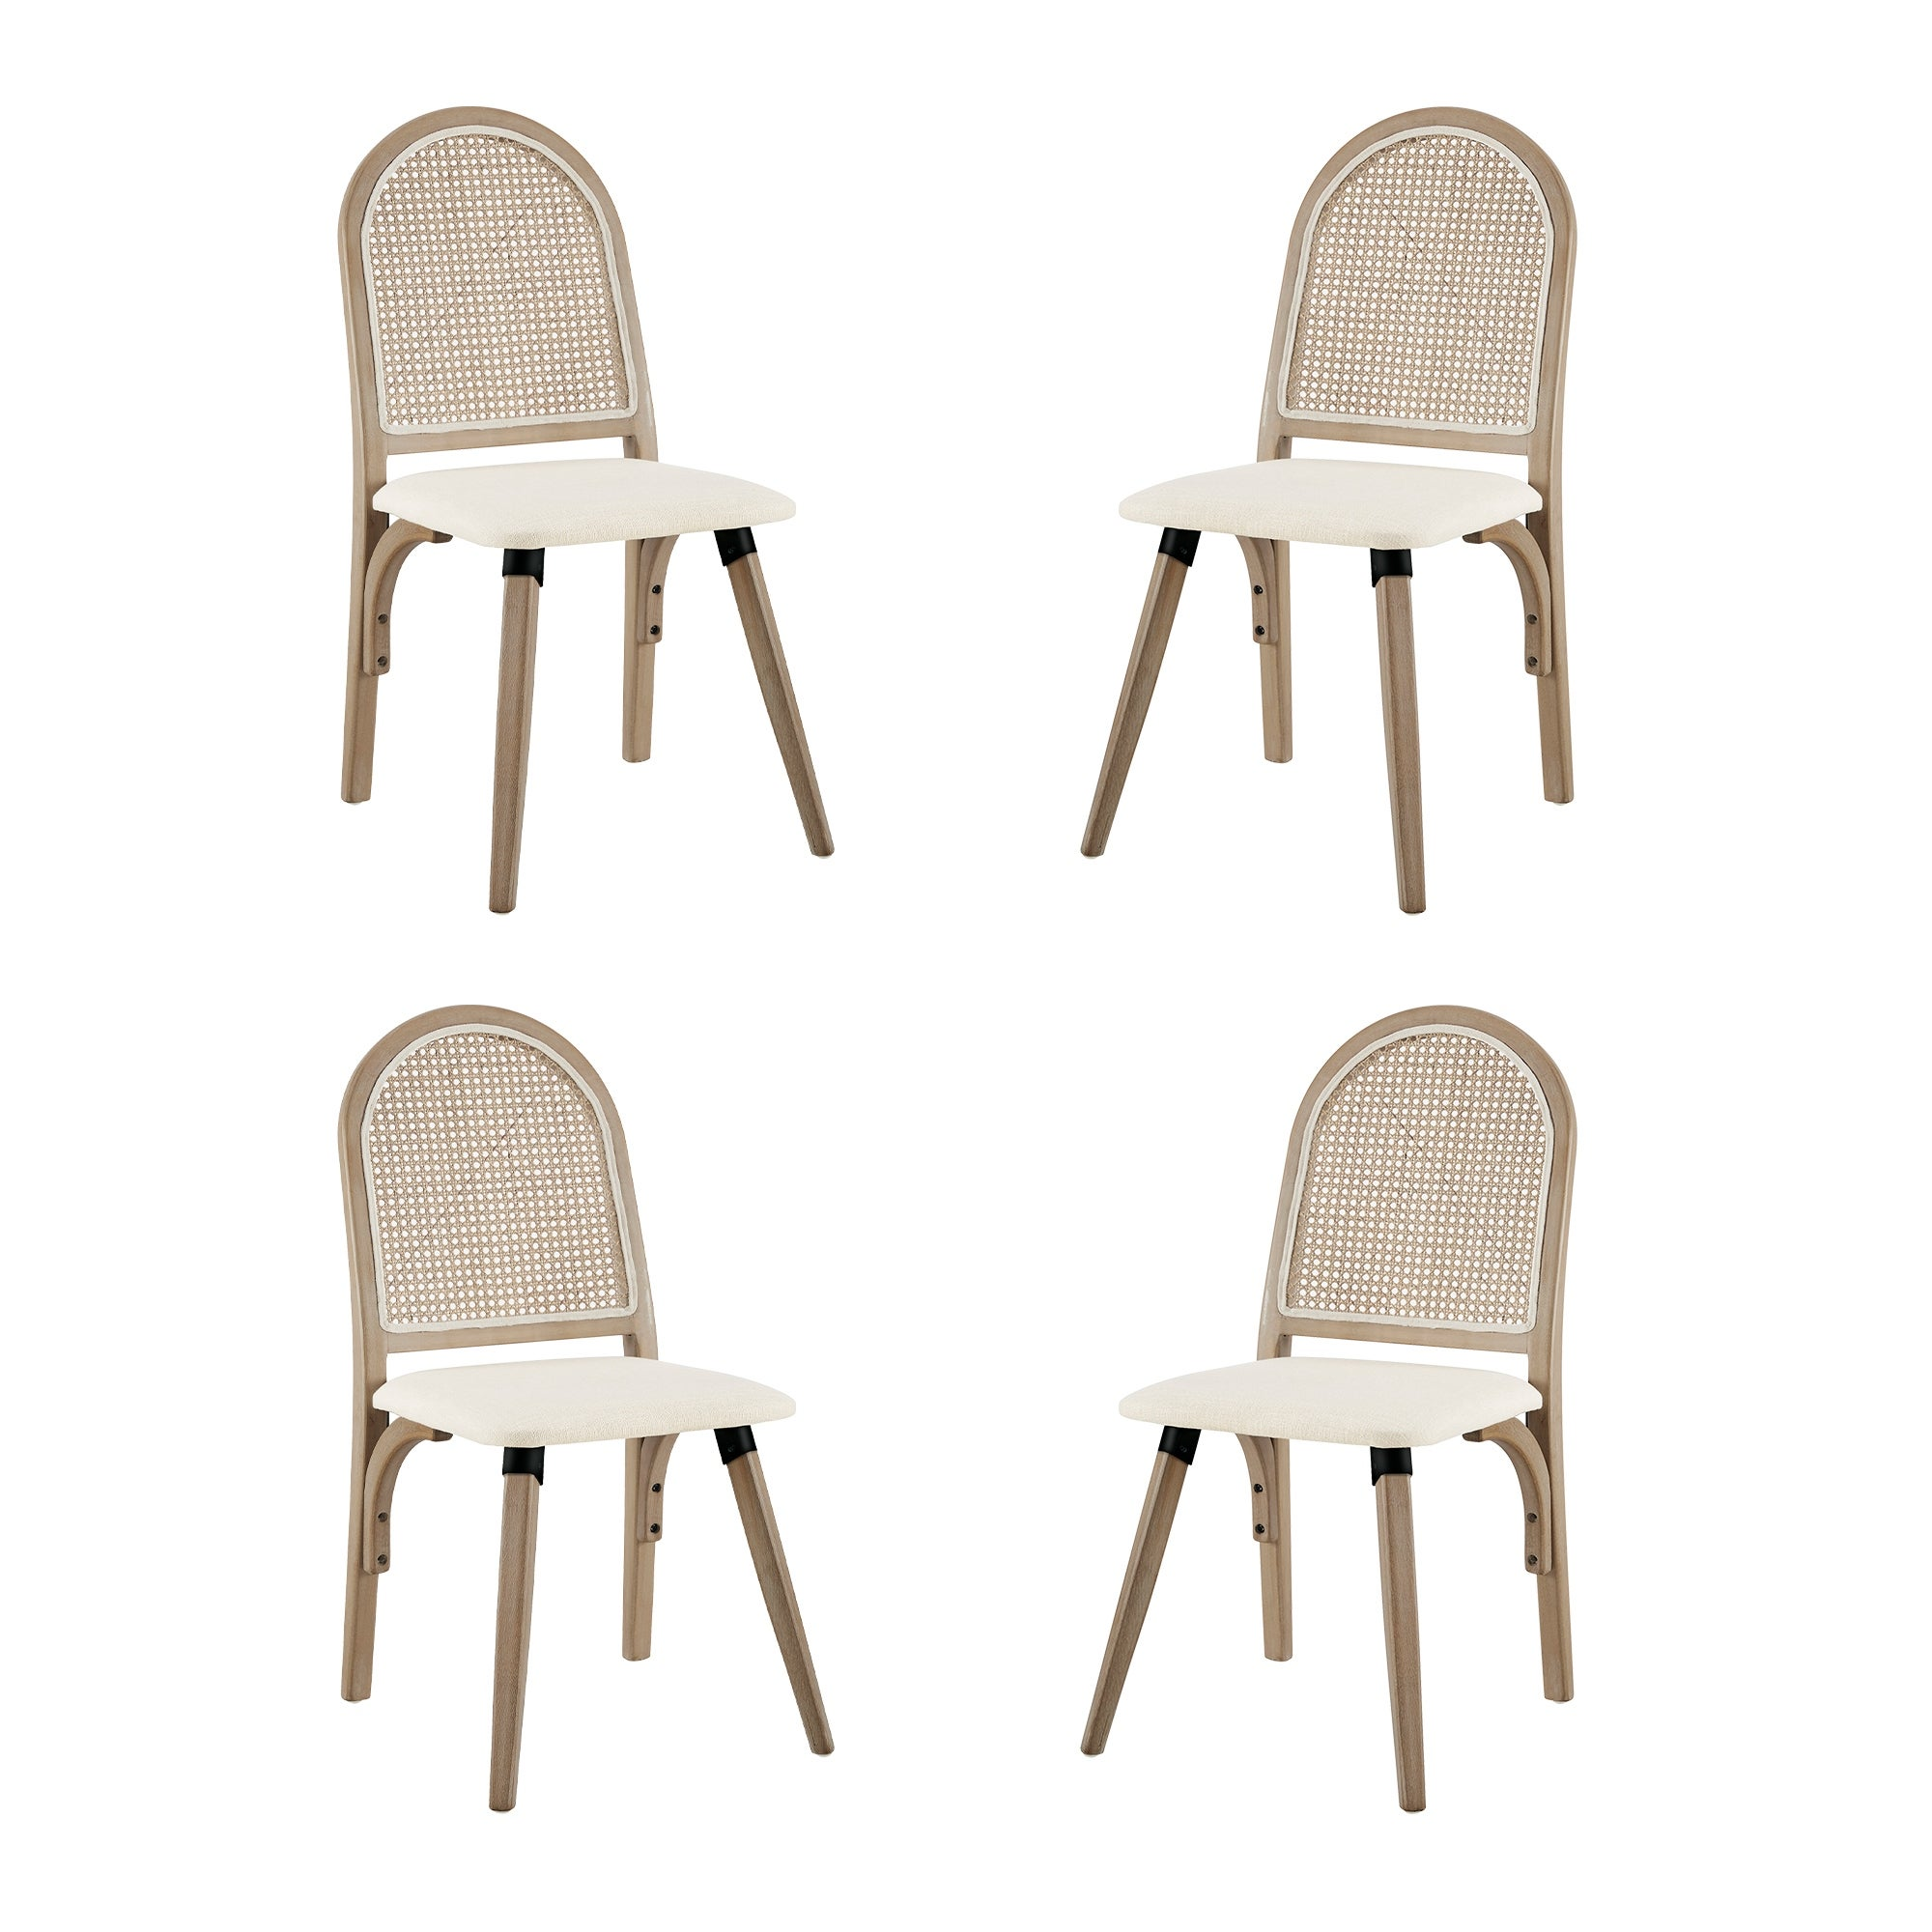 Shop For Art Leon Rattan Linen Fabric Cane Dining Side Chair With Bamboo Frame Get Free Shipping On Everything At Overstock Your Online Furniture Outlet Store Get 5 In Rewards With Club O 30668069